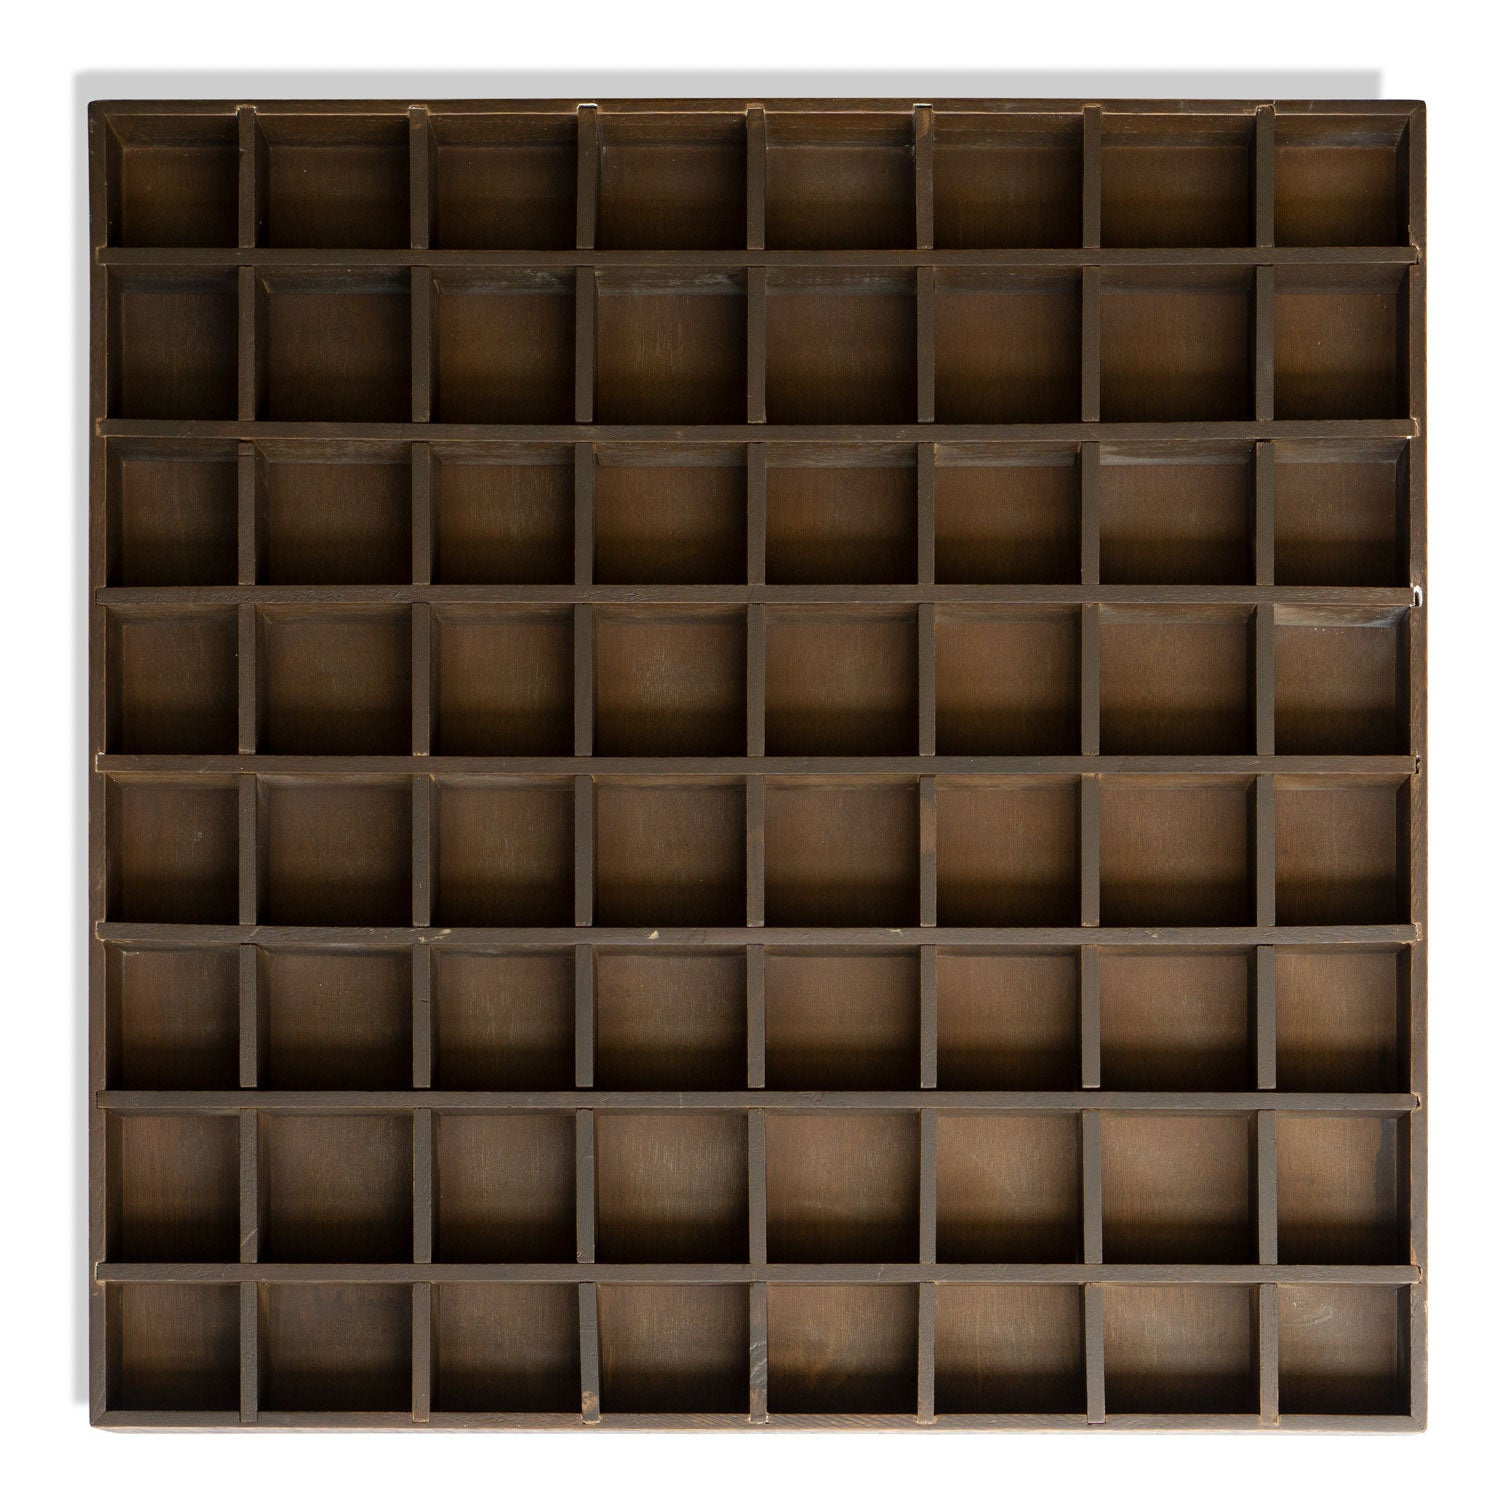 Curiosity Box, 64 compartments